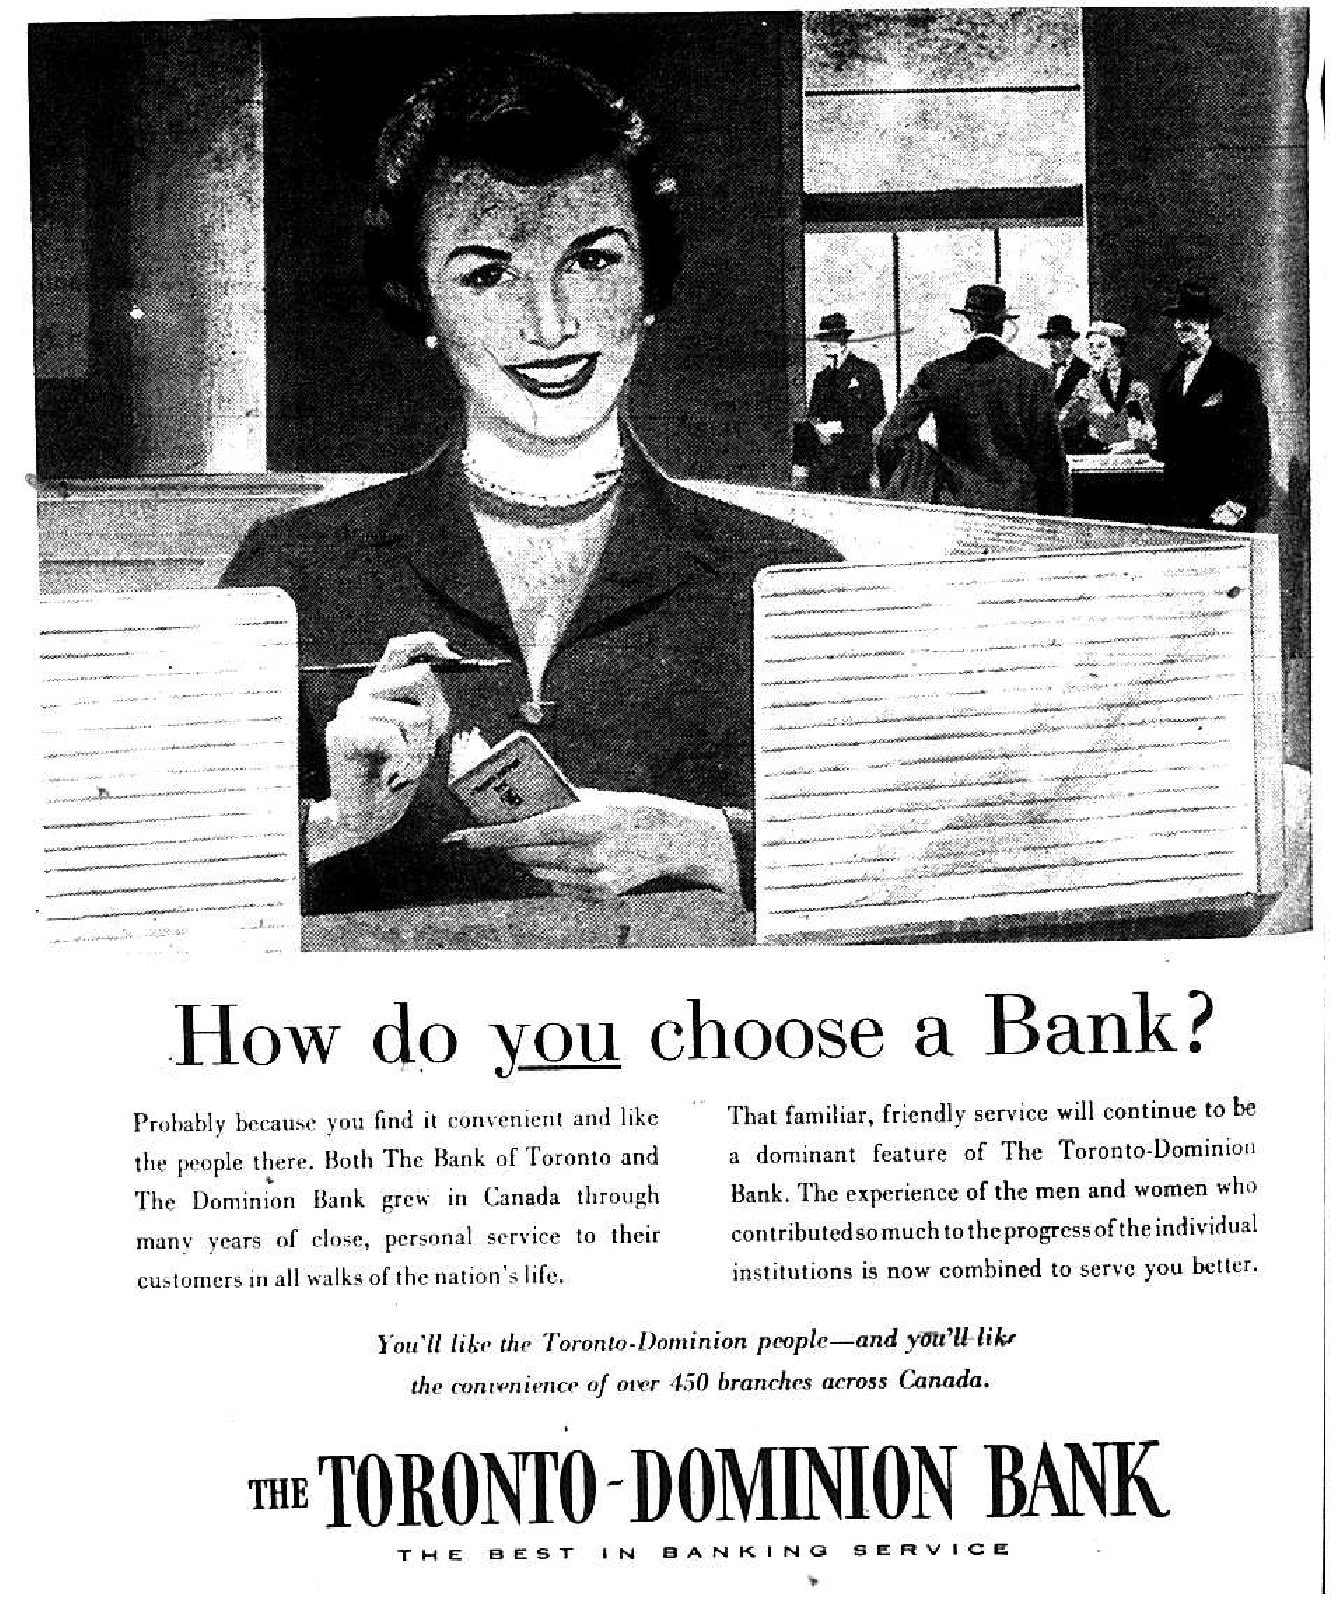 The Toronto-Dominion Bank Advertisement (1955)